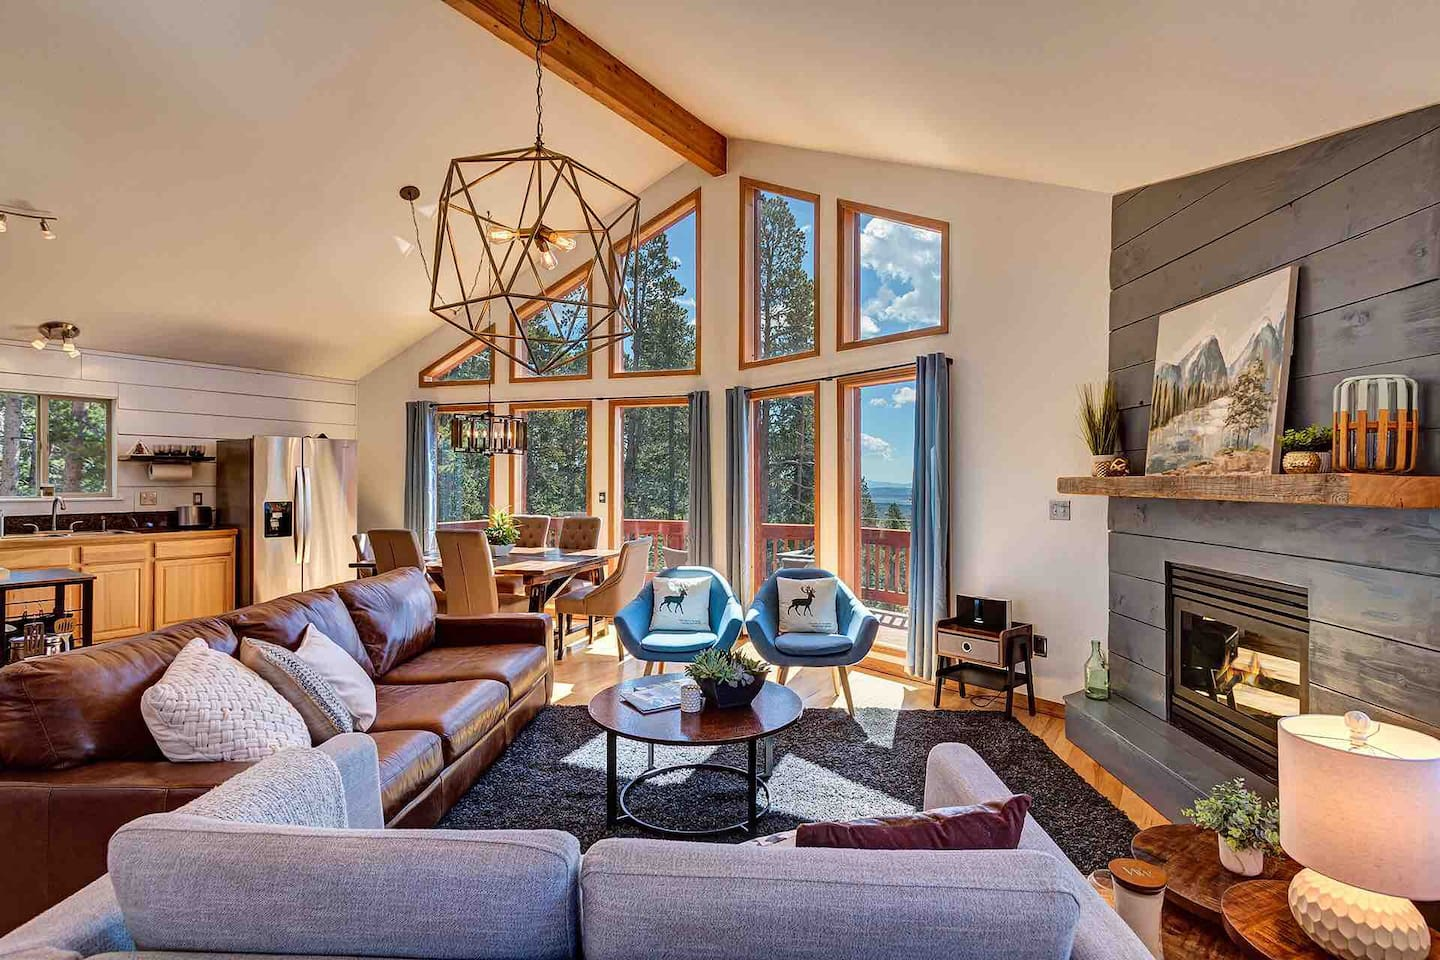 The High Alpine Lodge - Park County's premier luxury lodge accommodation for 10.